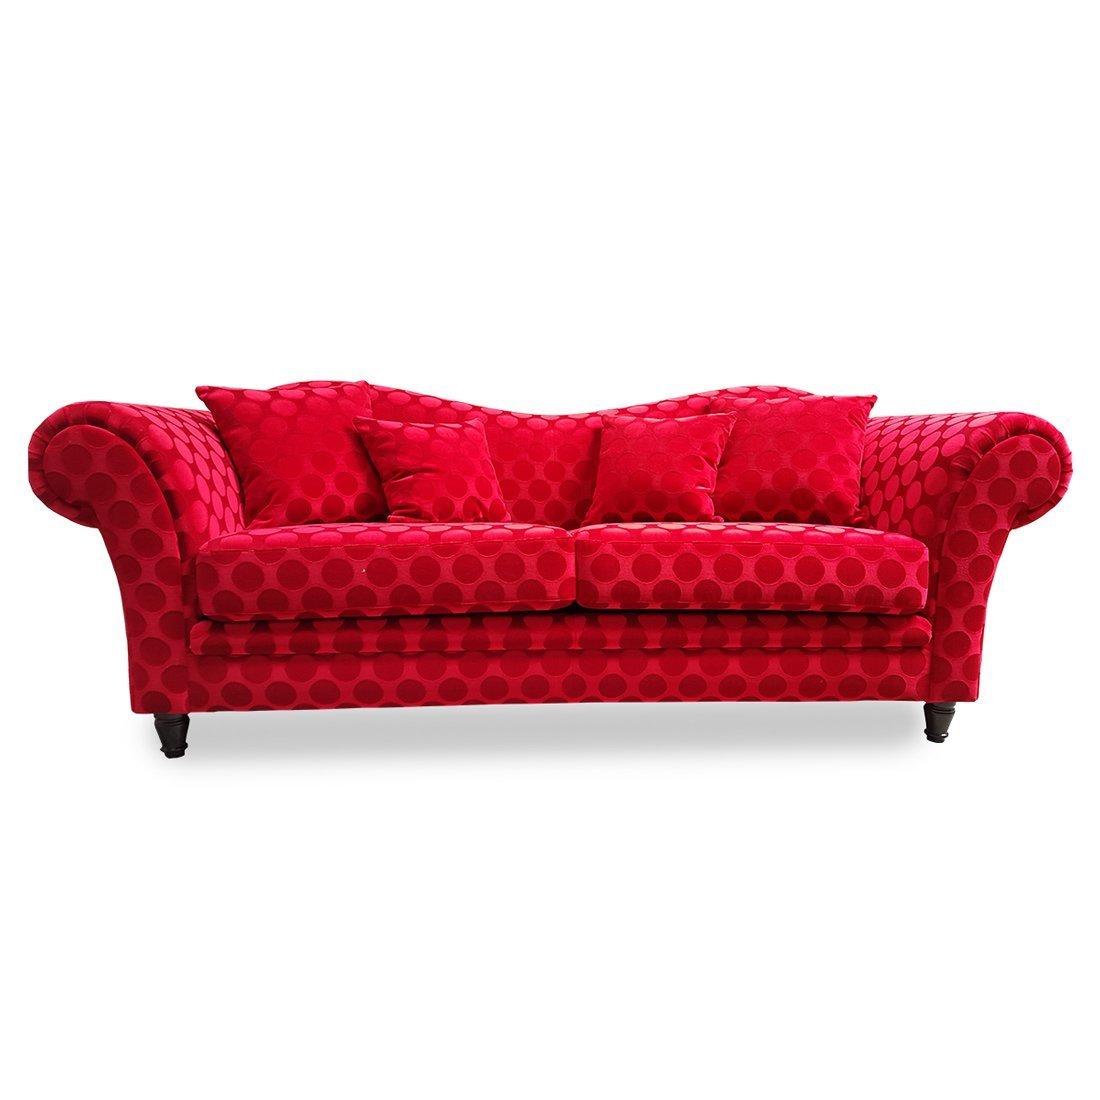 Canap convertible rouge design meubles et atmosph re for Canape rouge